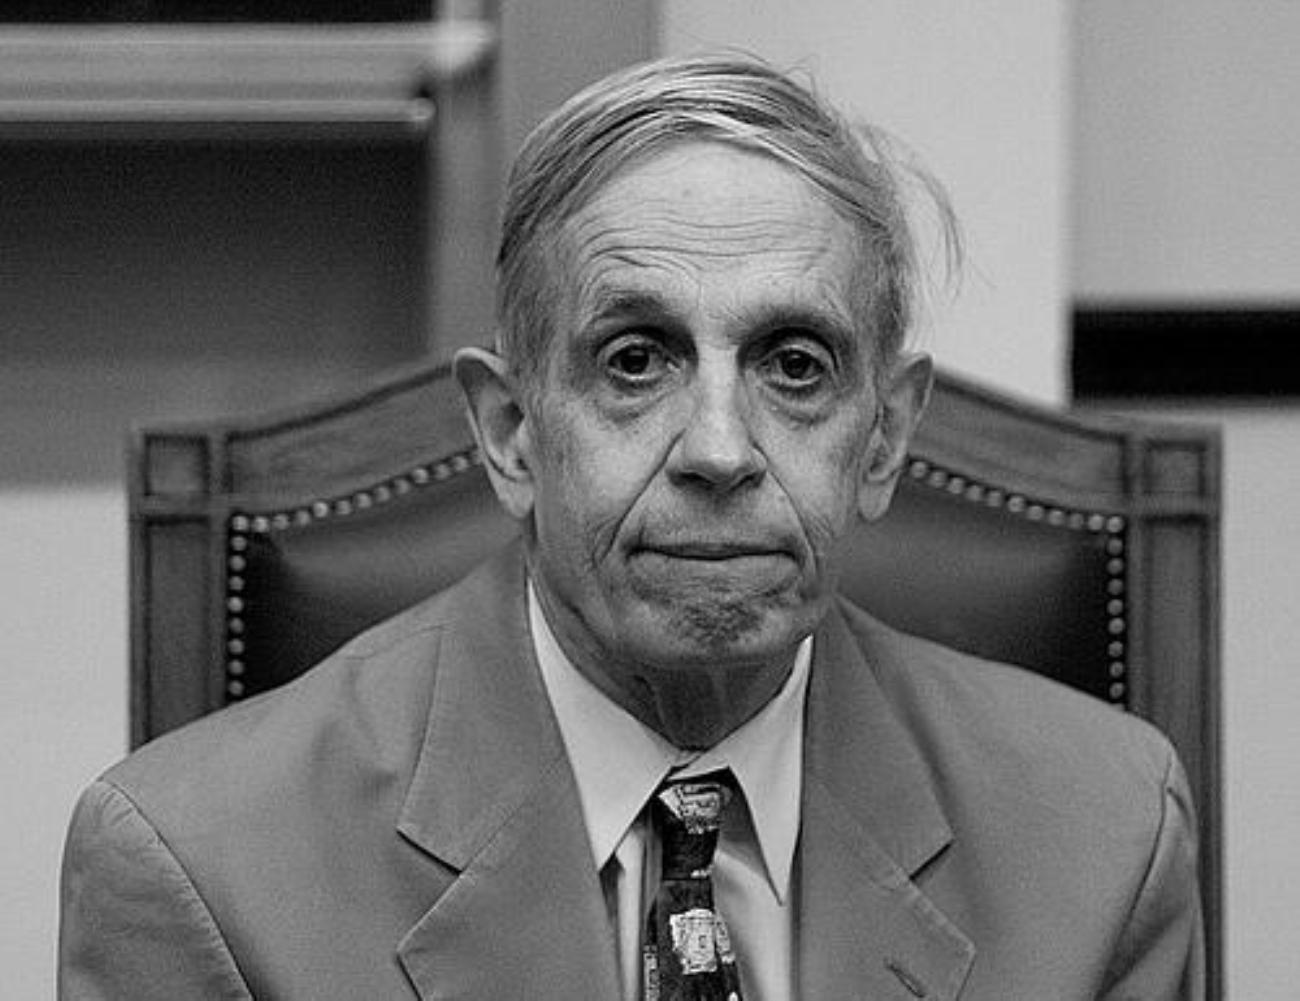 john nash View the profiles of professionals named john nash on linkedin there are 700+ professionals named john nash, who use linkedin to exchange information, ideas, and opportunities.